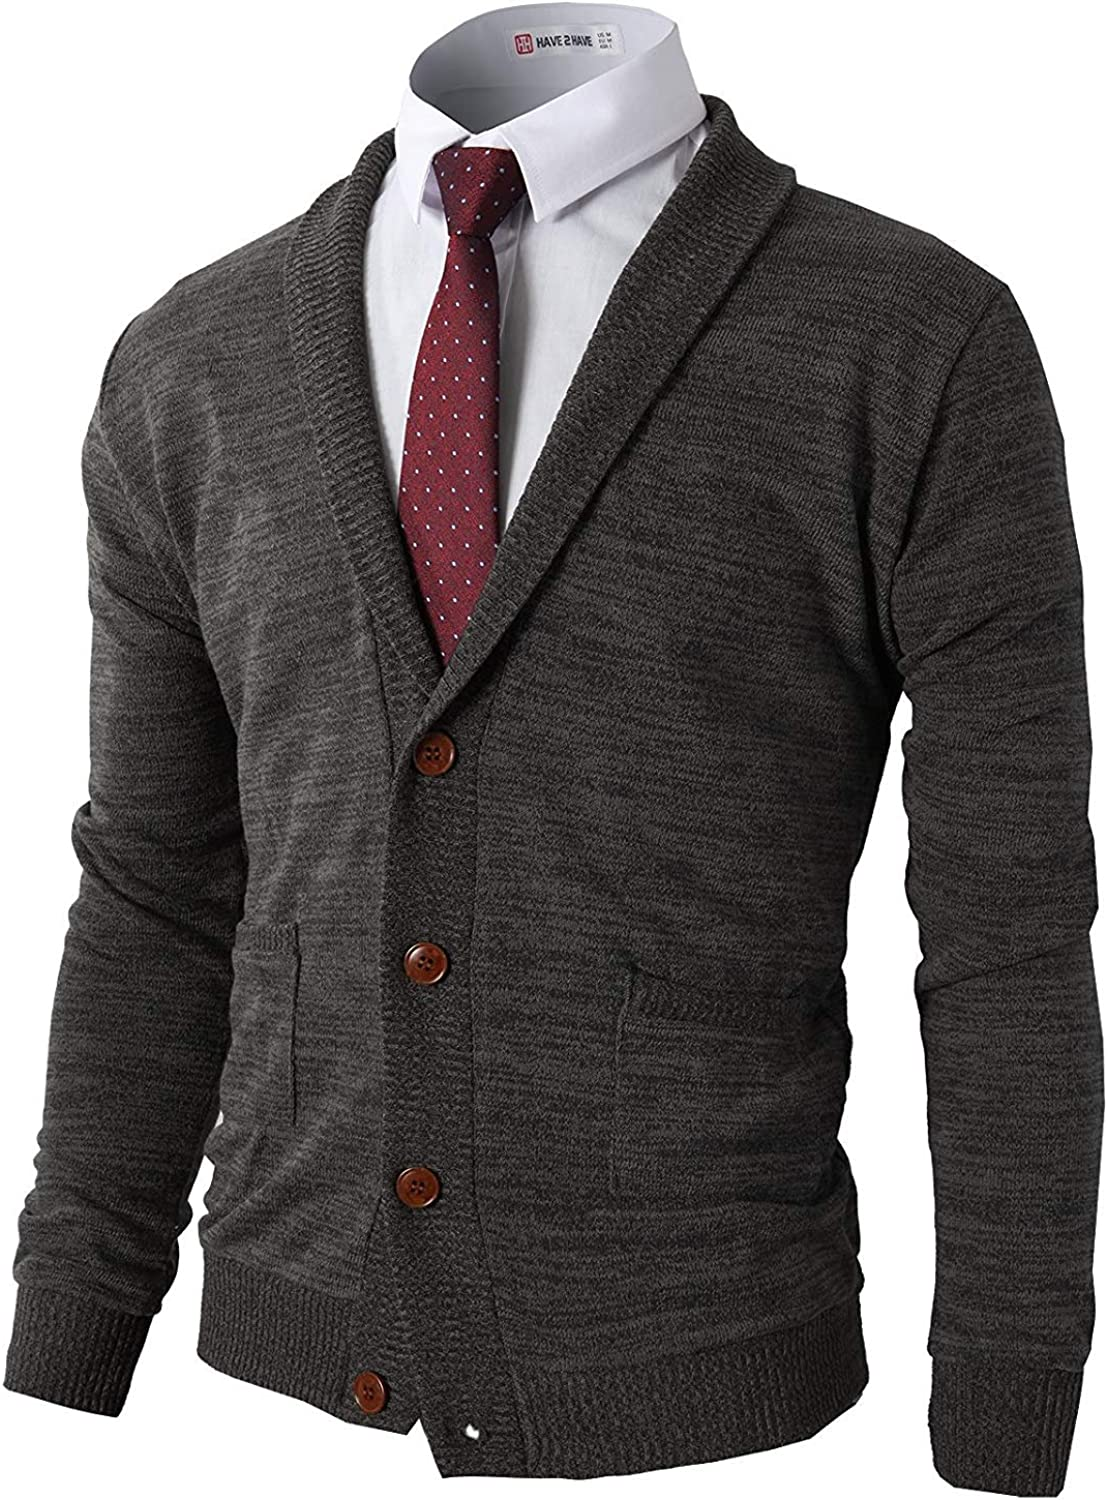 H2H Mens Casual Comfortable Fit Cardigan Sweater Shawl Collar Soft Fabric with Ribbing Edge